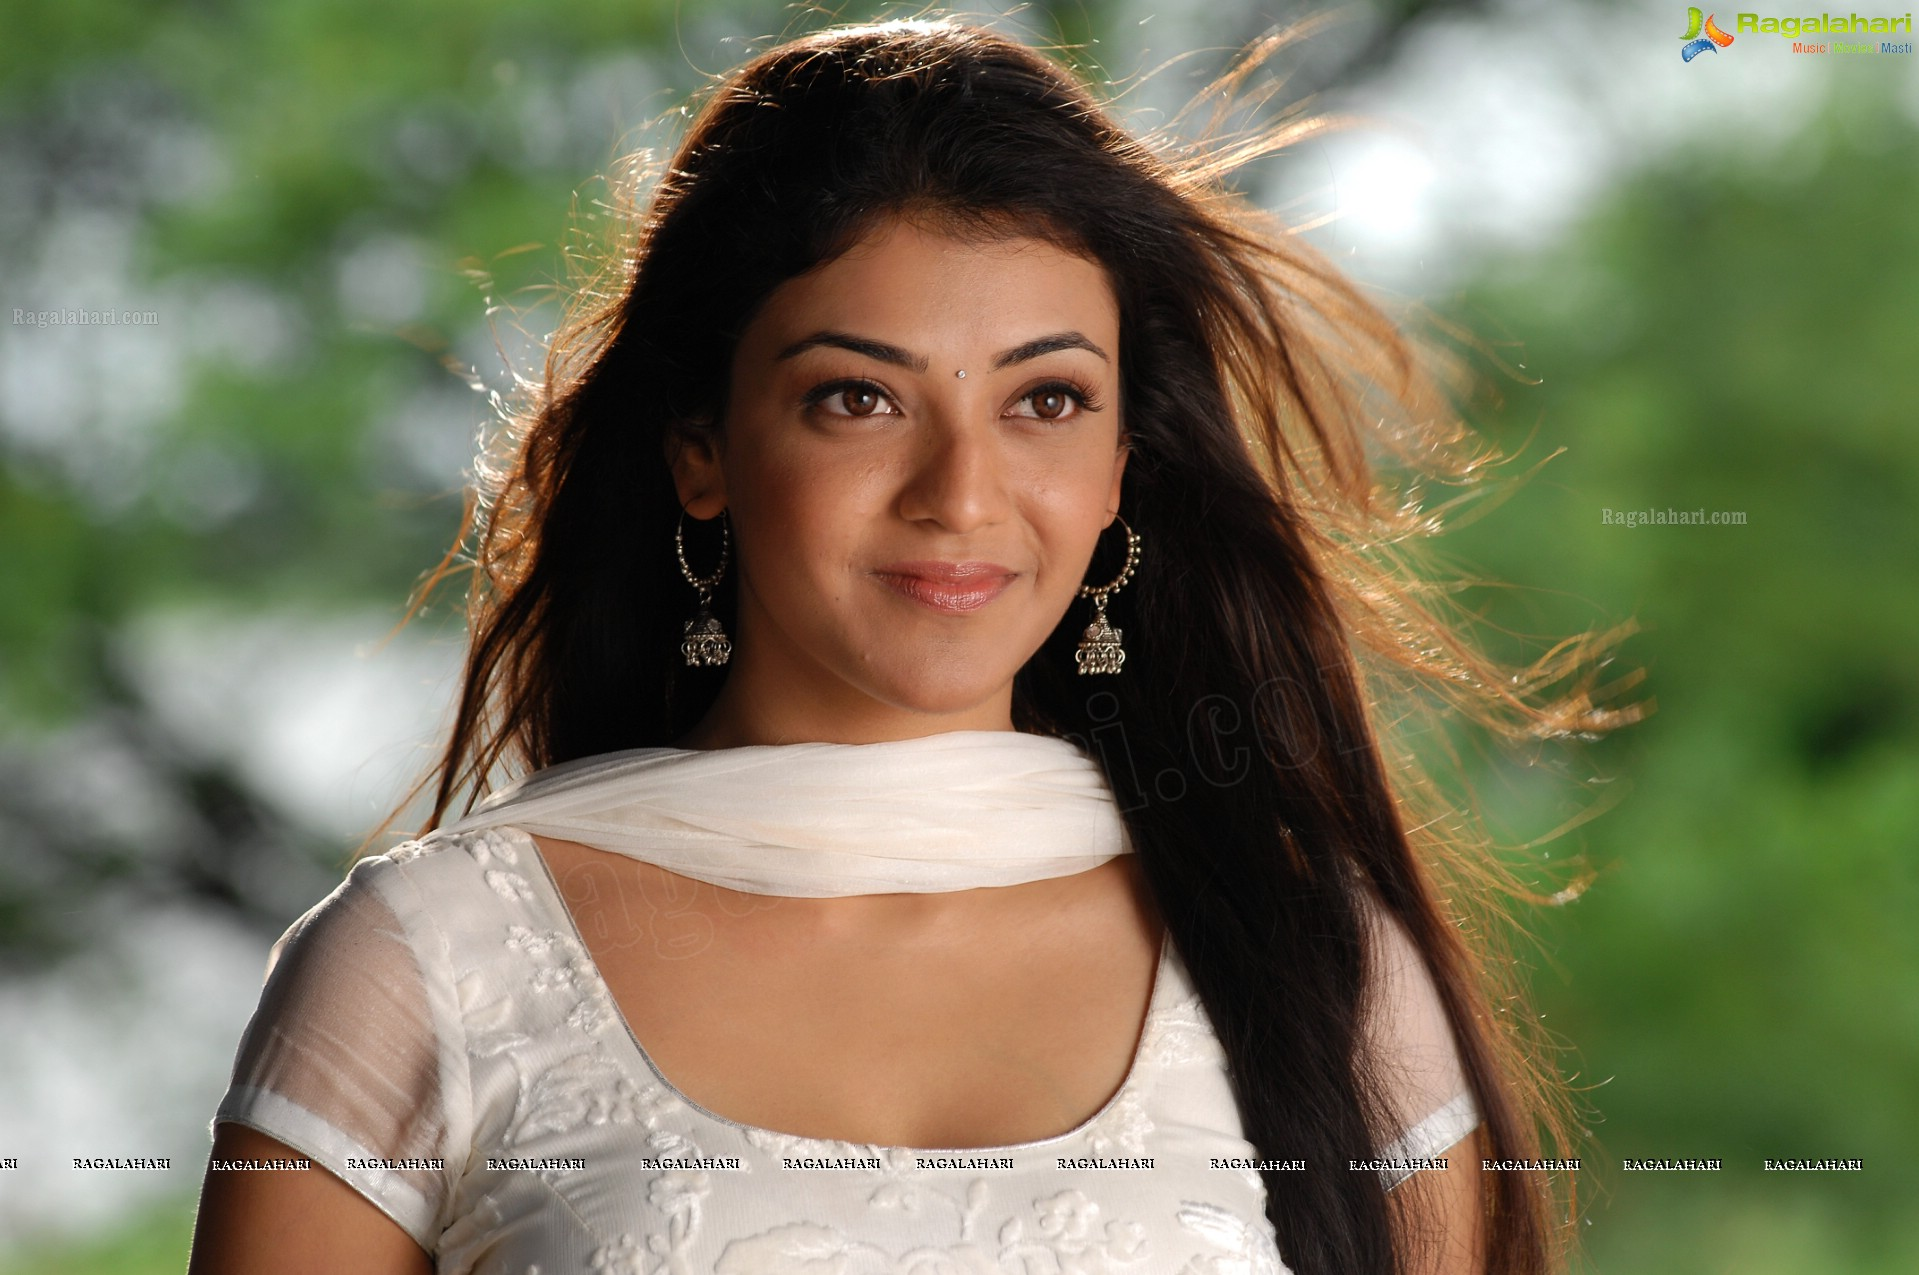 kajal agarwal (hd) image 10 | telugu actress photos,photoshoot